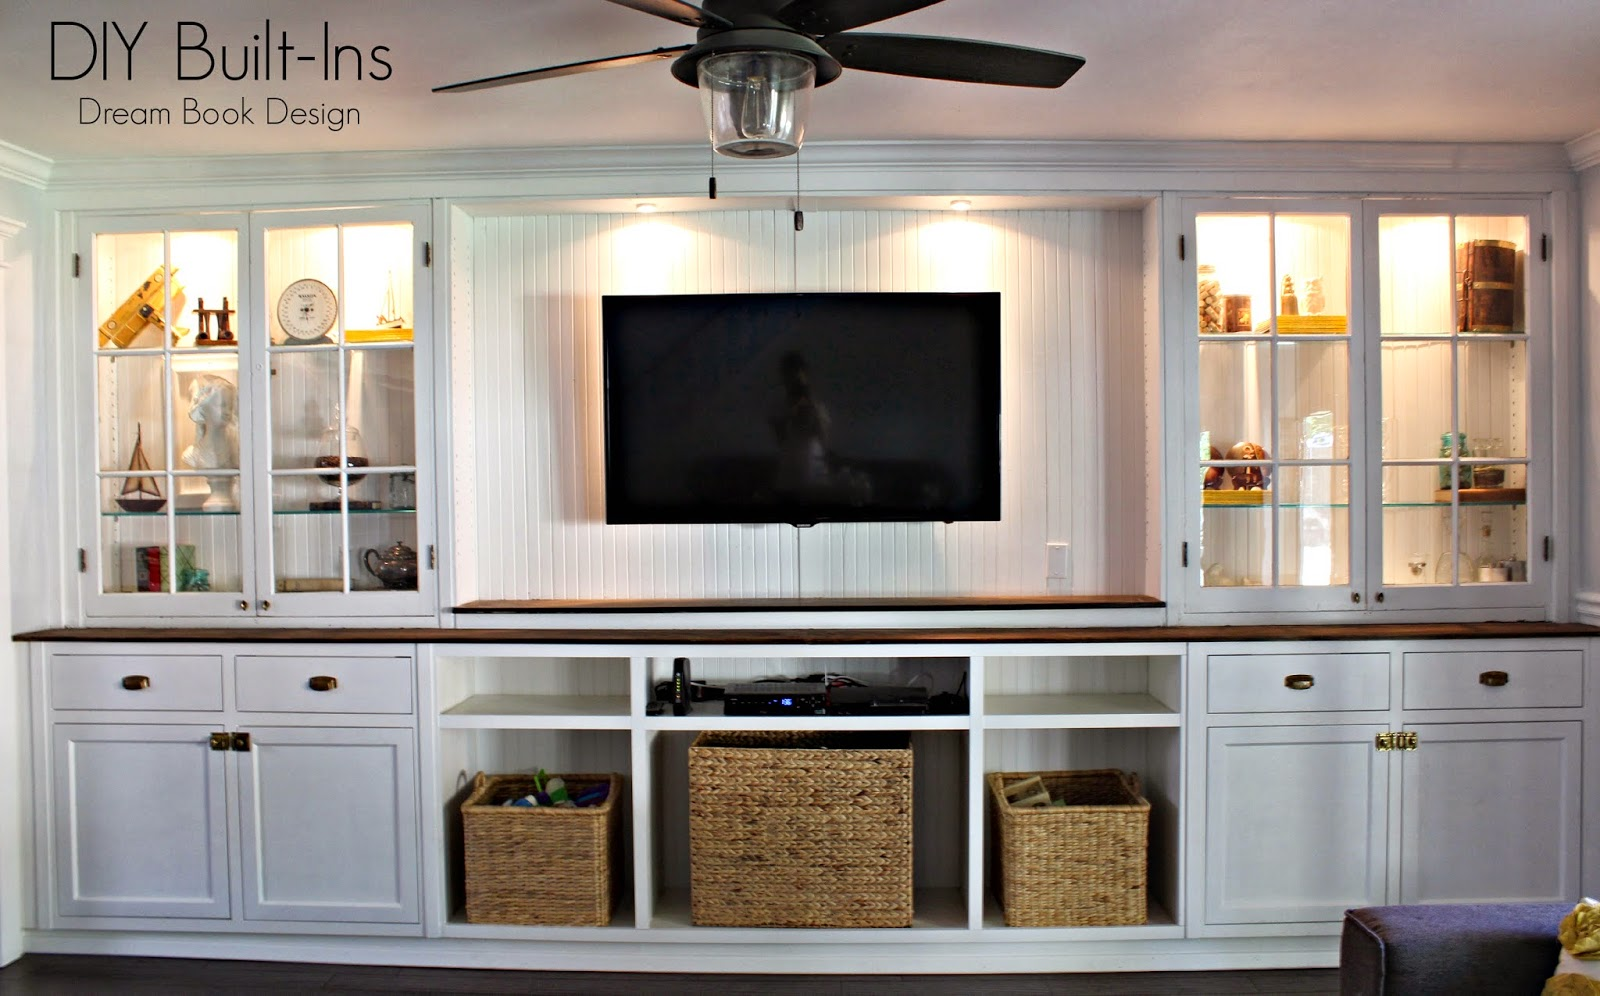 Design Your Own Home Entertainment Center Pdf Diy Plans For Built In Cabinets Download Woodworking